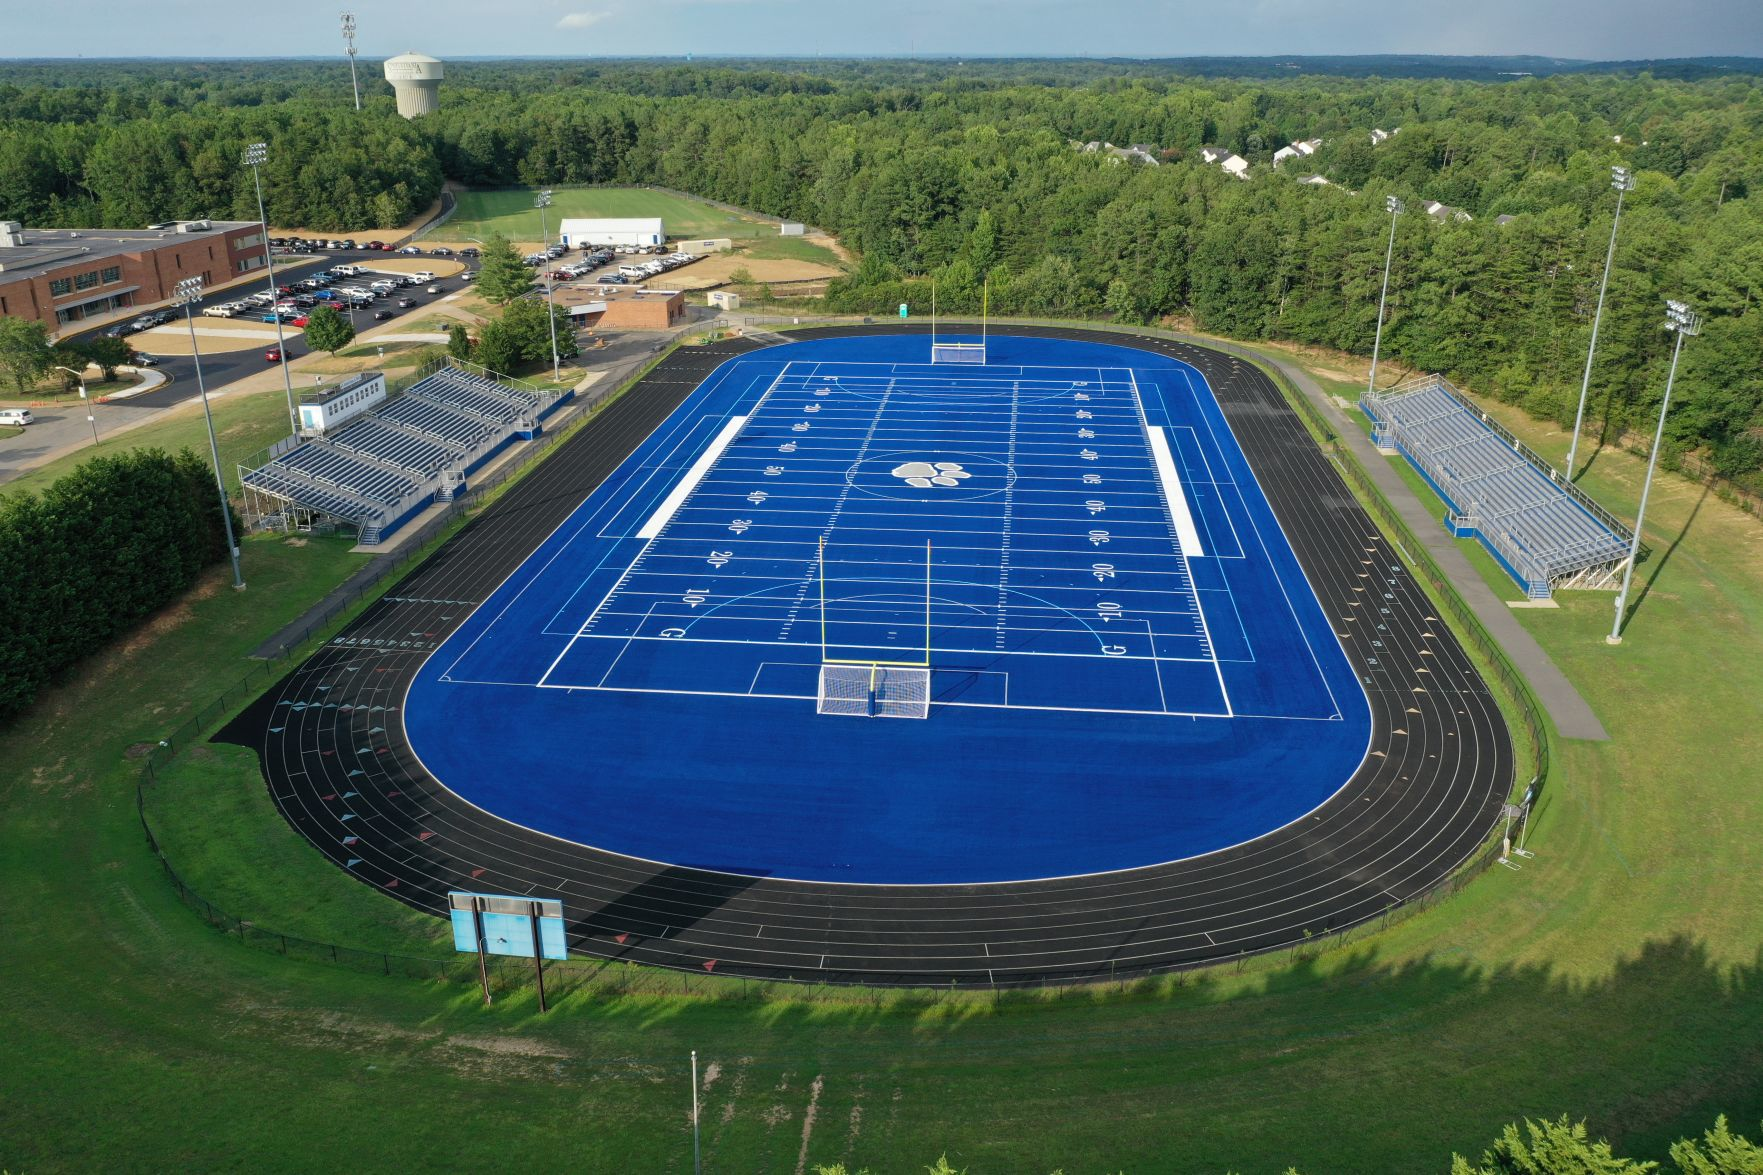 Stadium High School Football Field